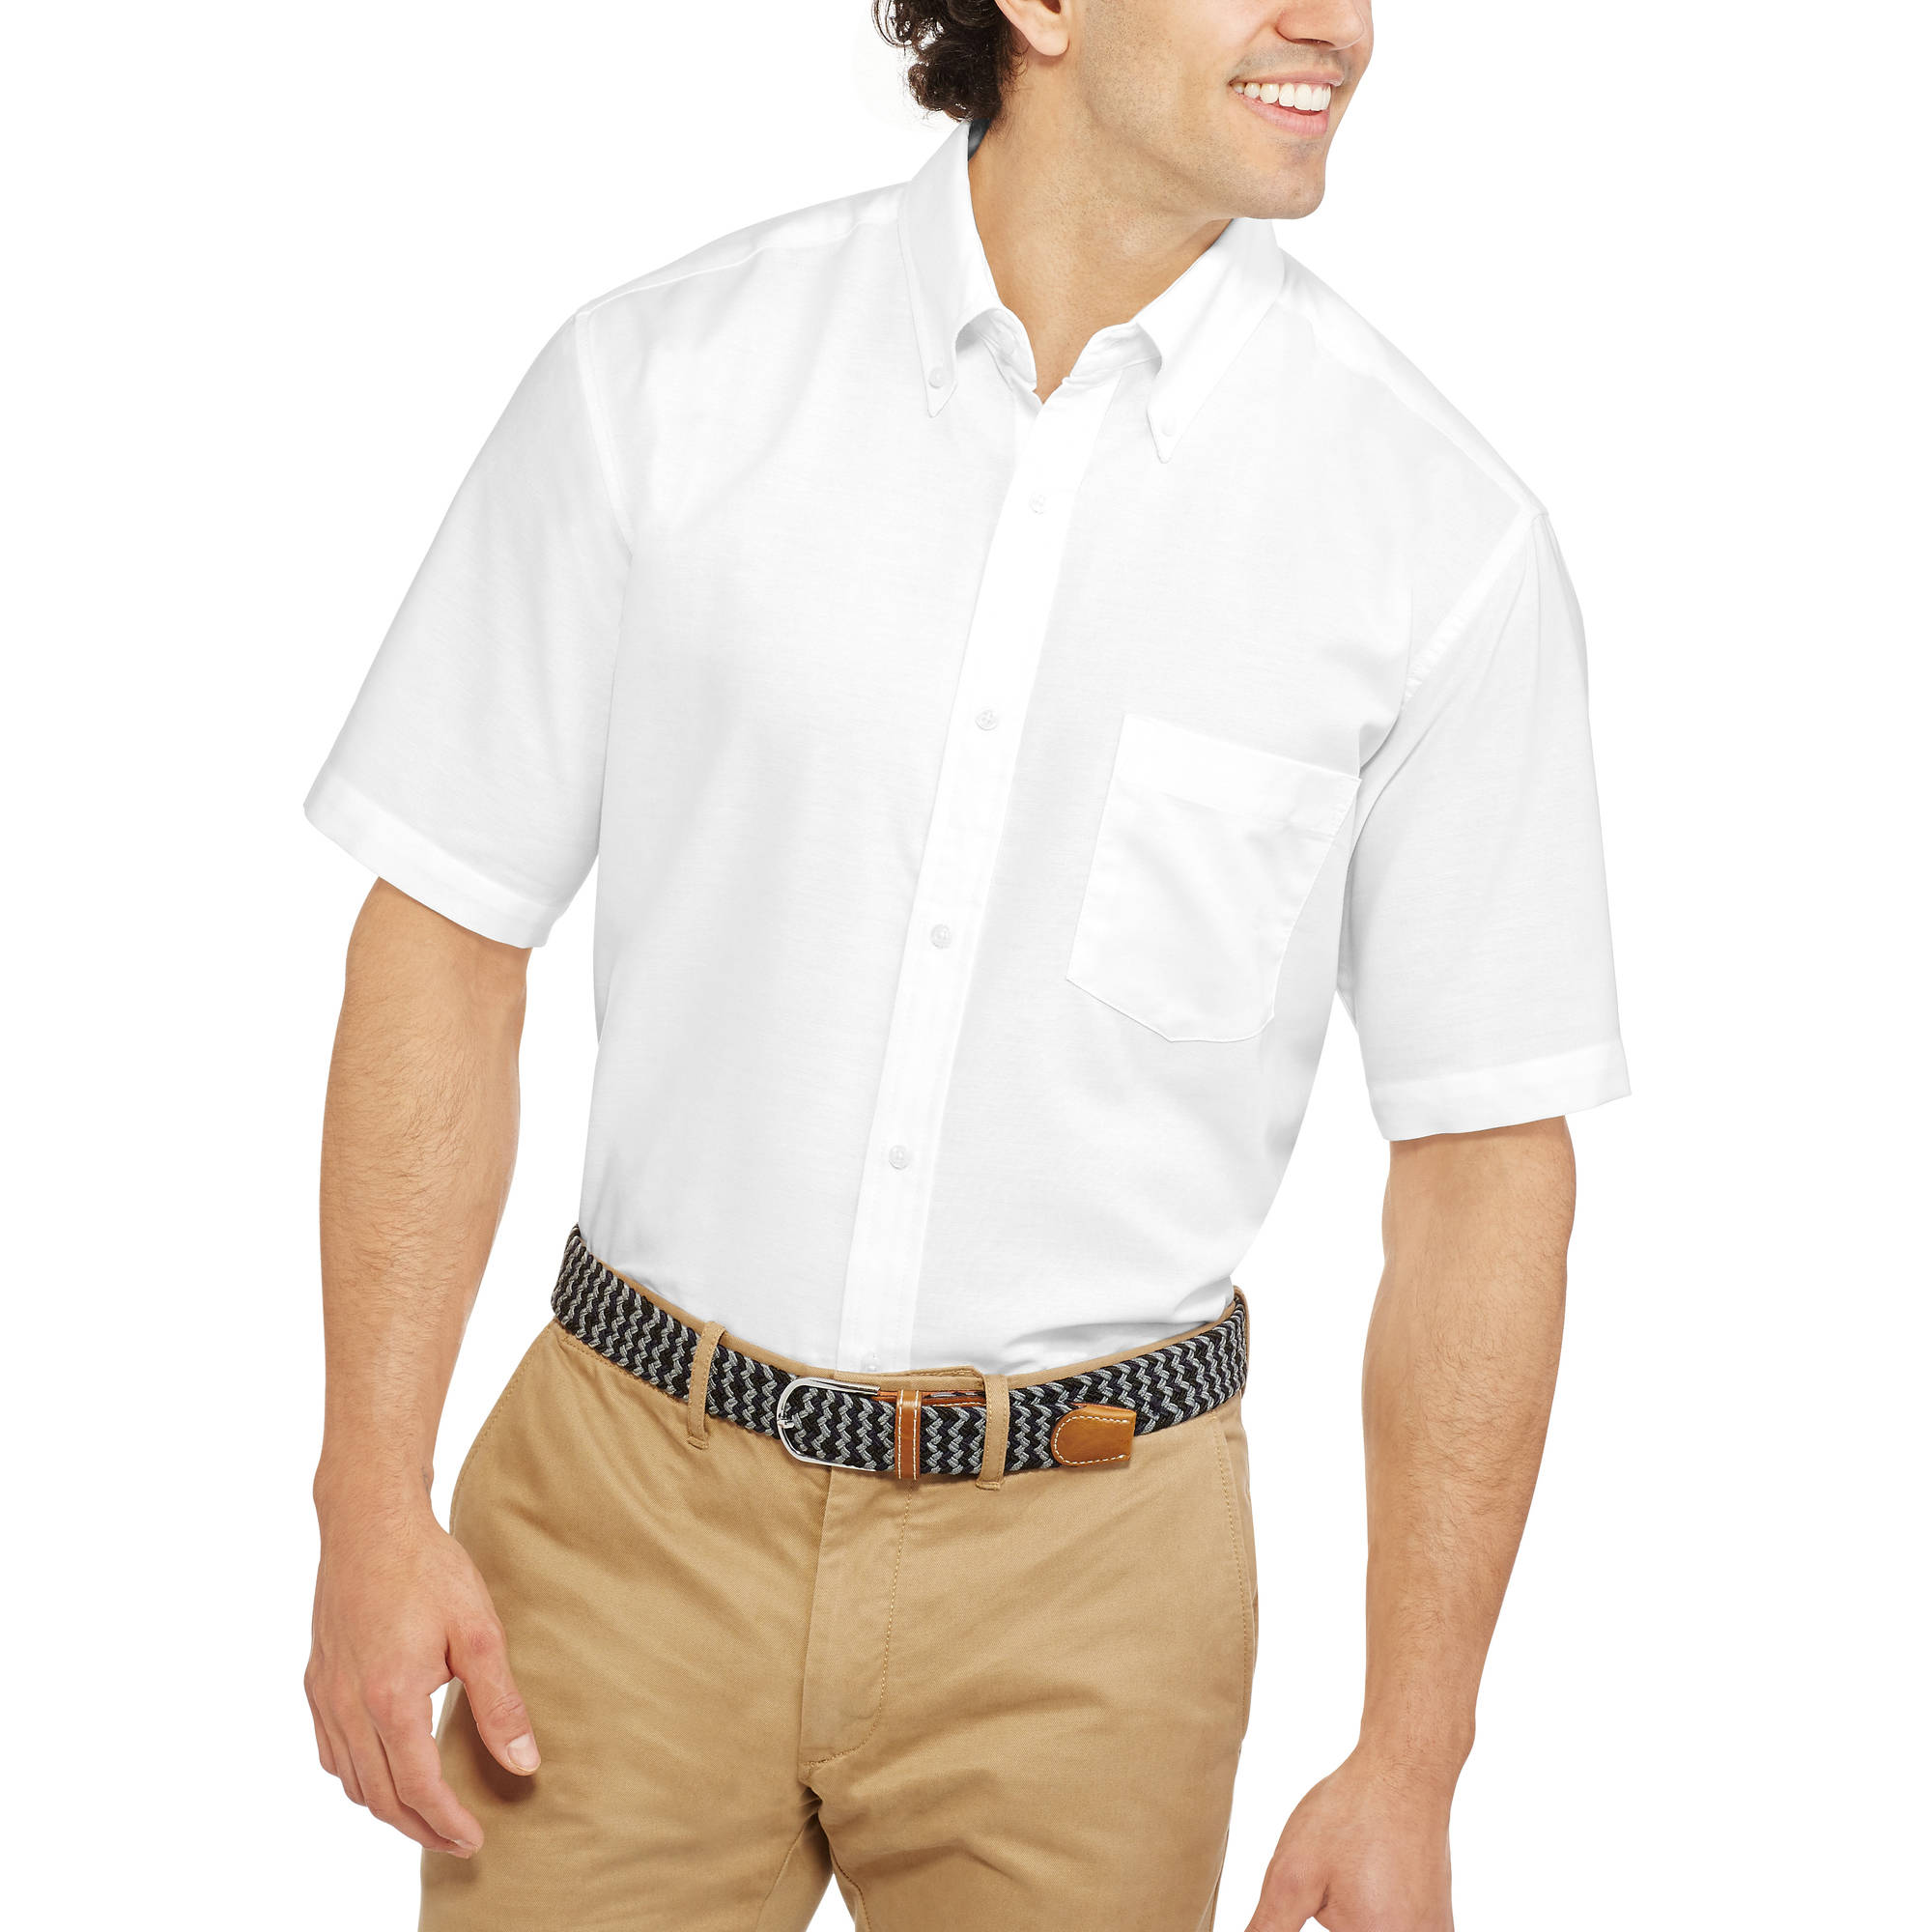 Big Men's Short Sleeve Oxford Shirt